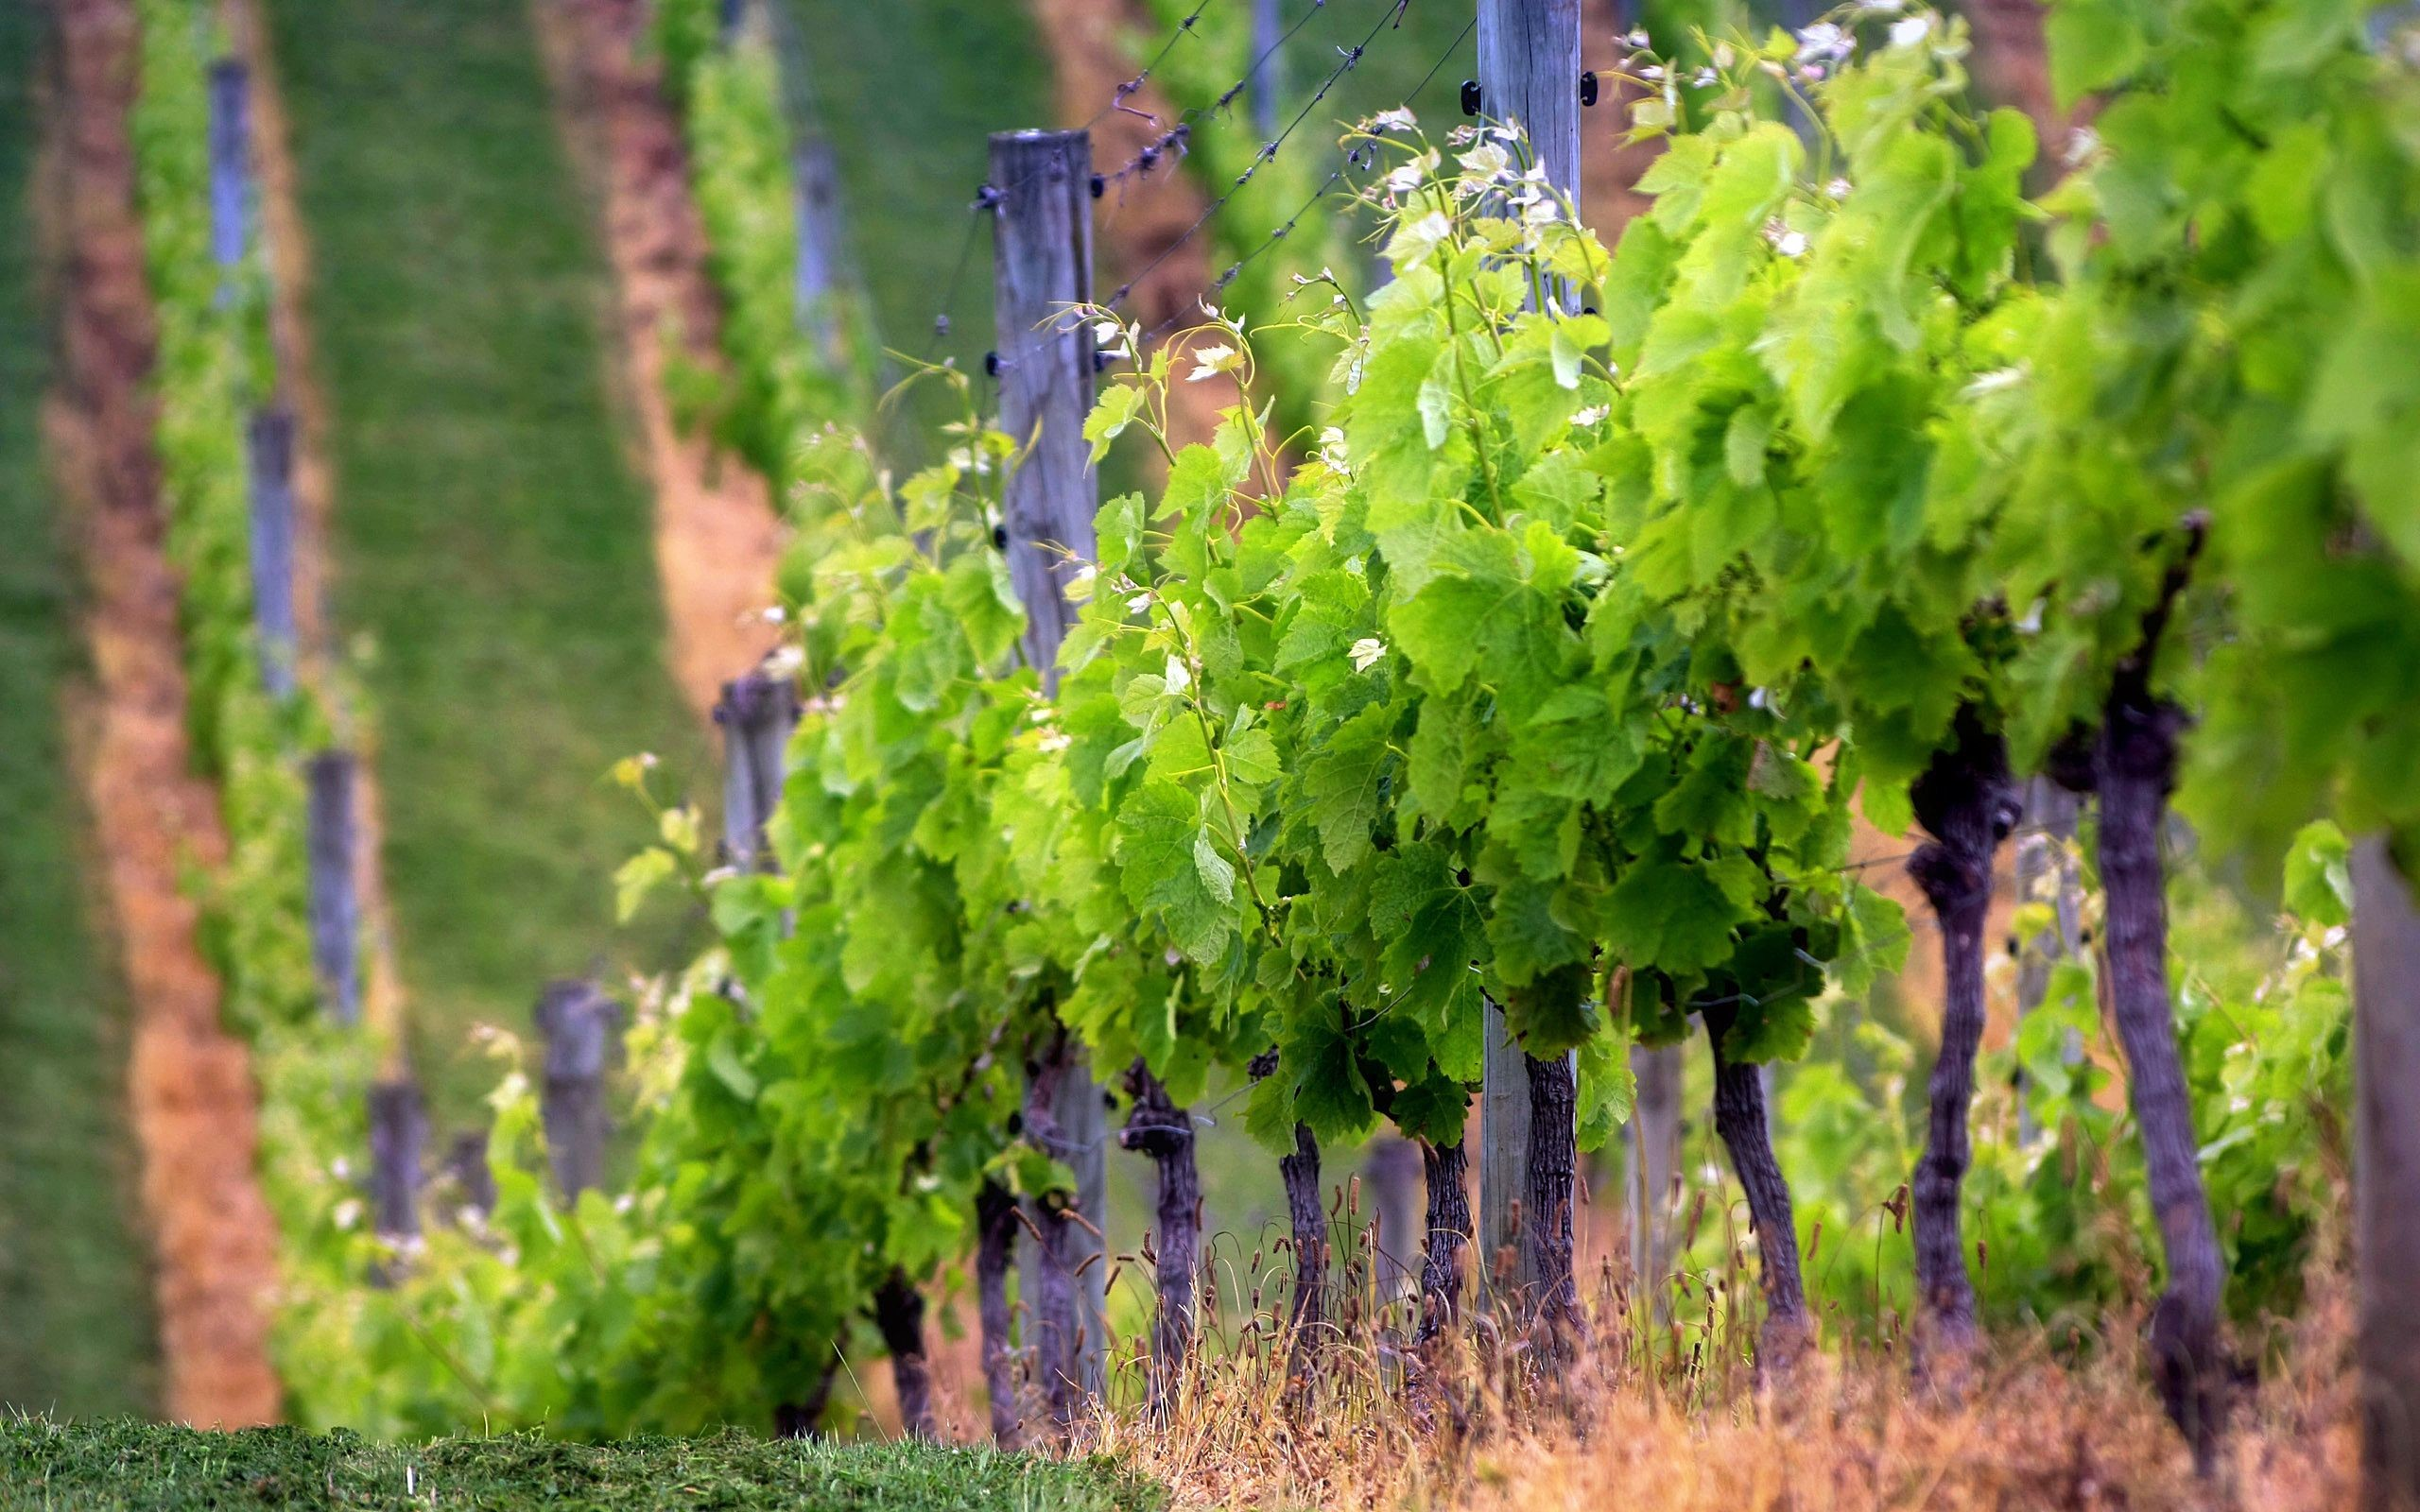 2560x1600 Best Vineyard Wallpaper Background Wallpaper